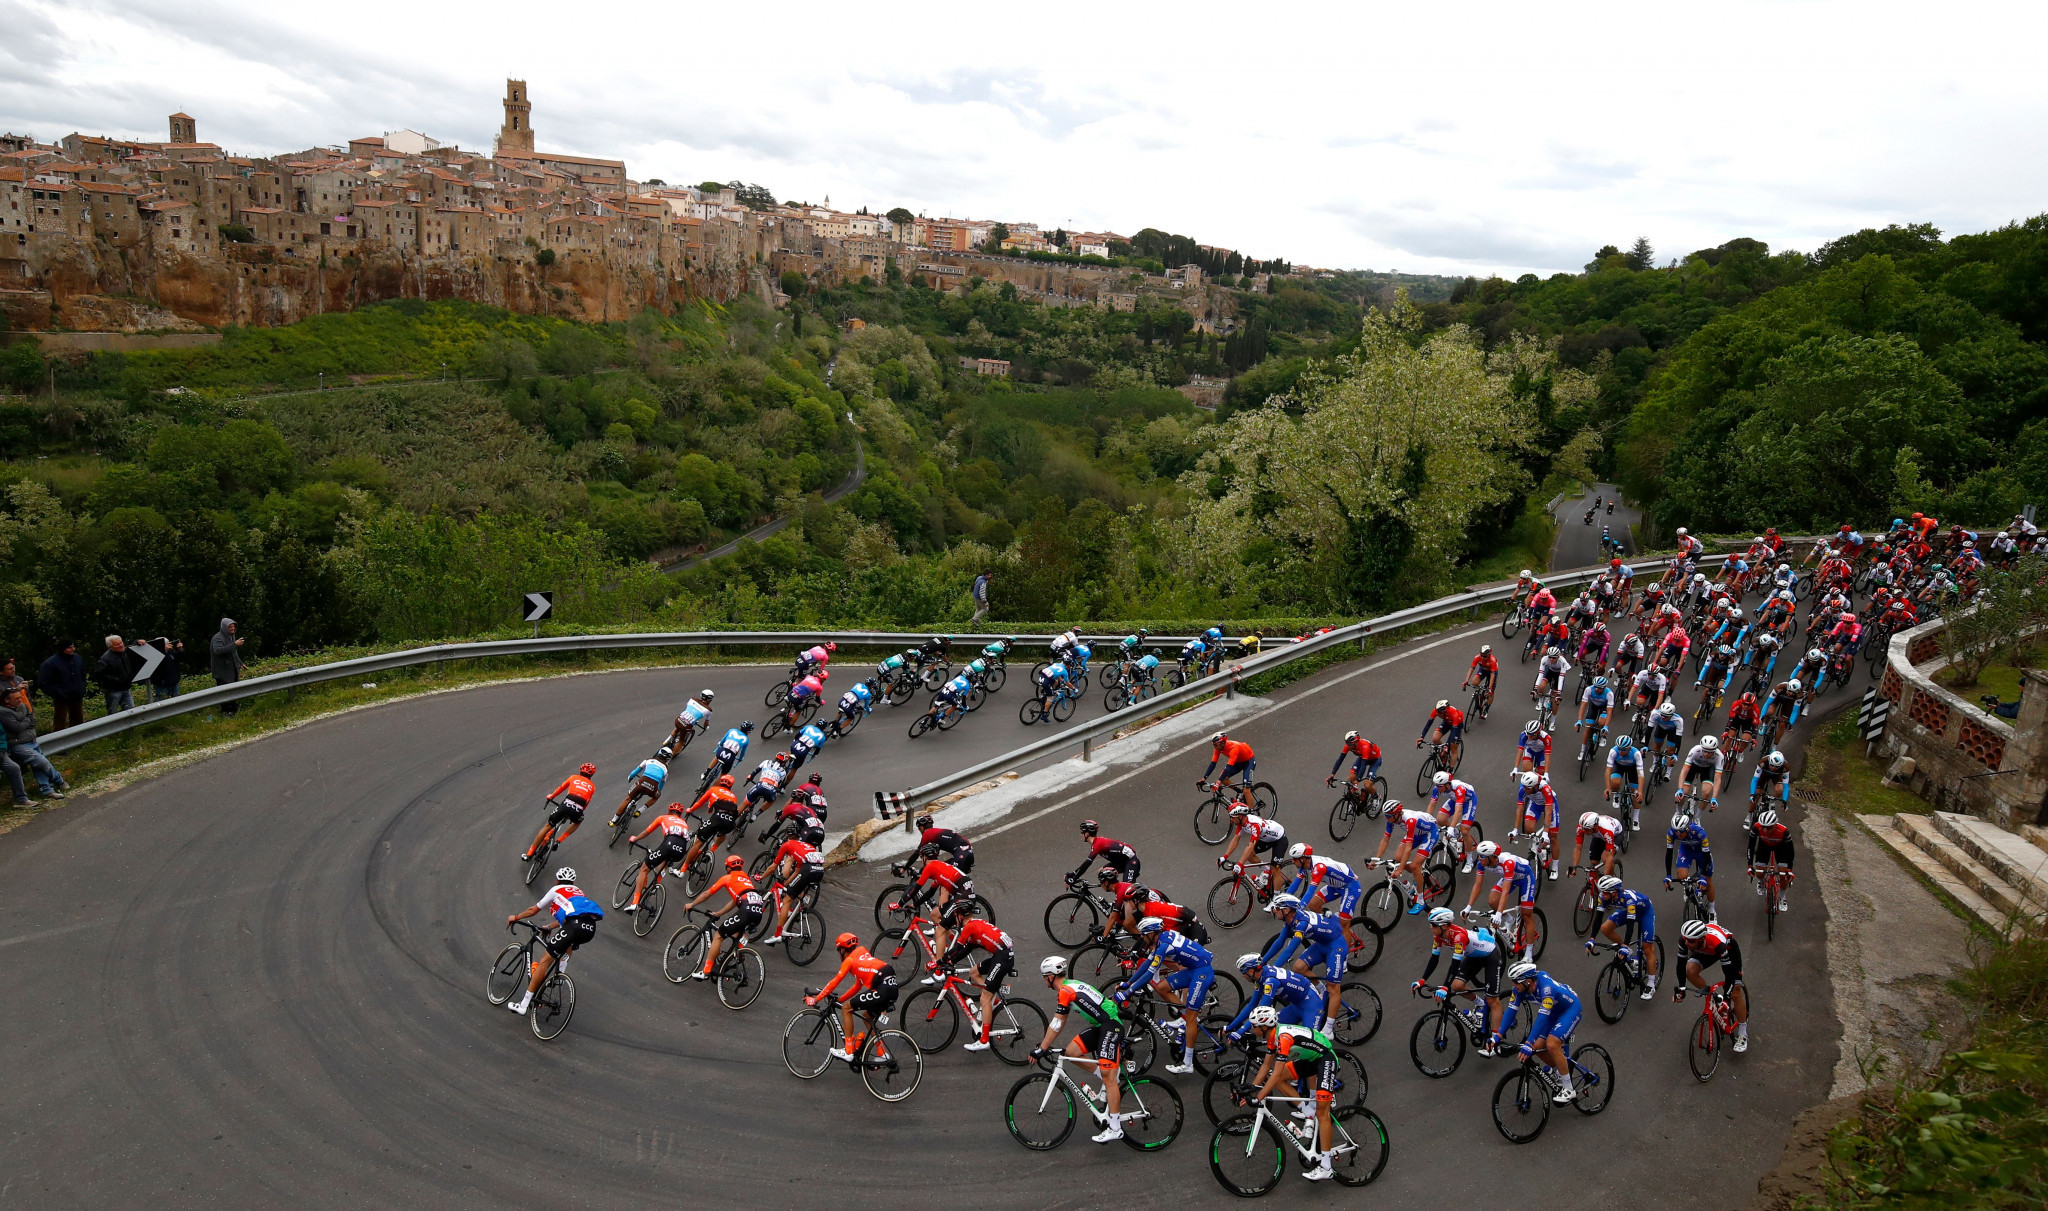 Tuscany and Emilia-Romagna launch joint bid to host Tour de France Grand Depart